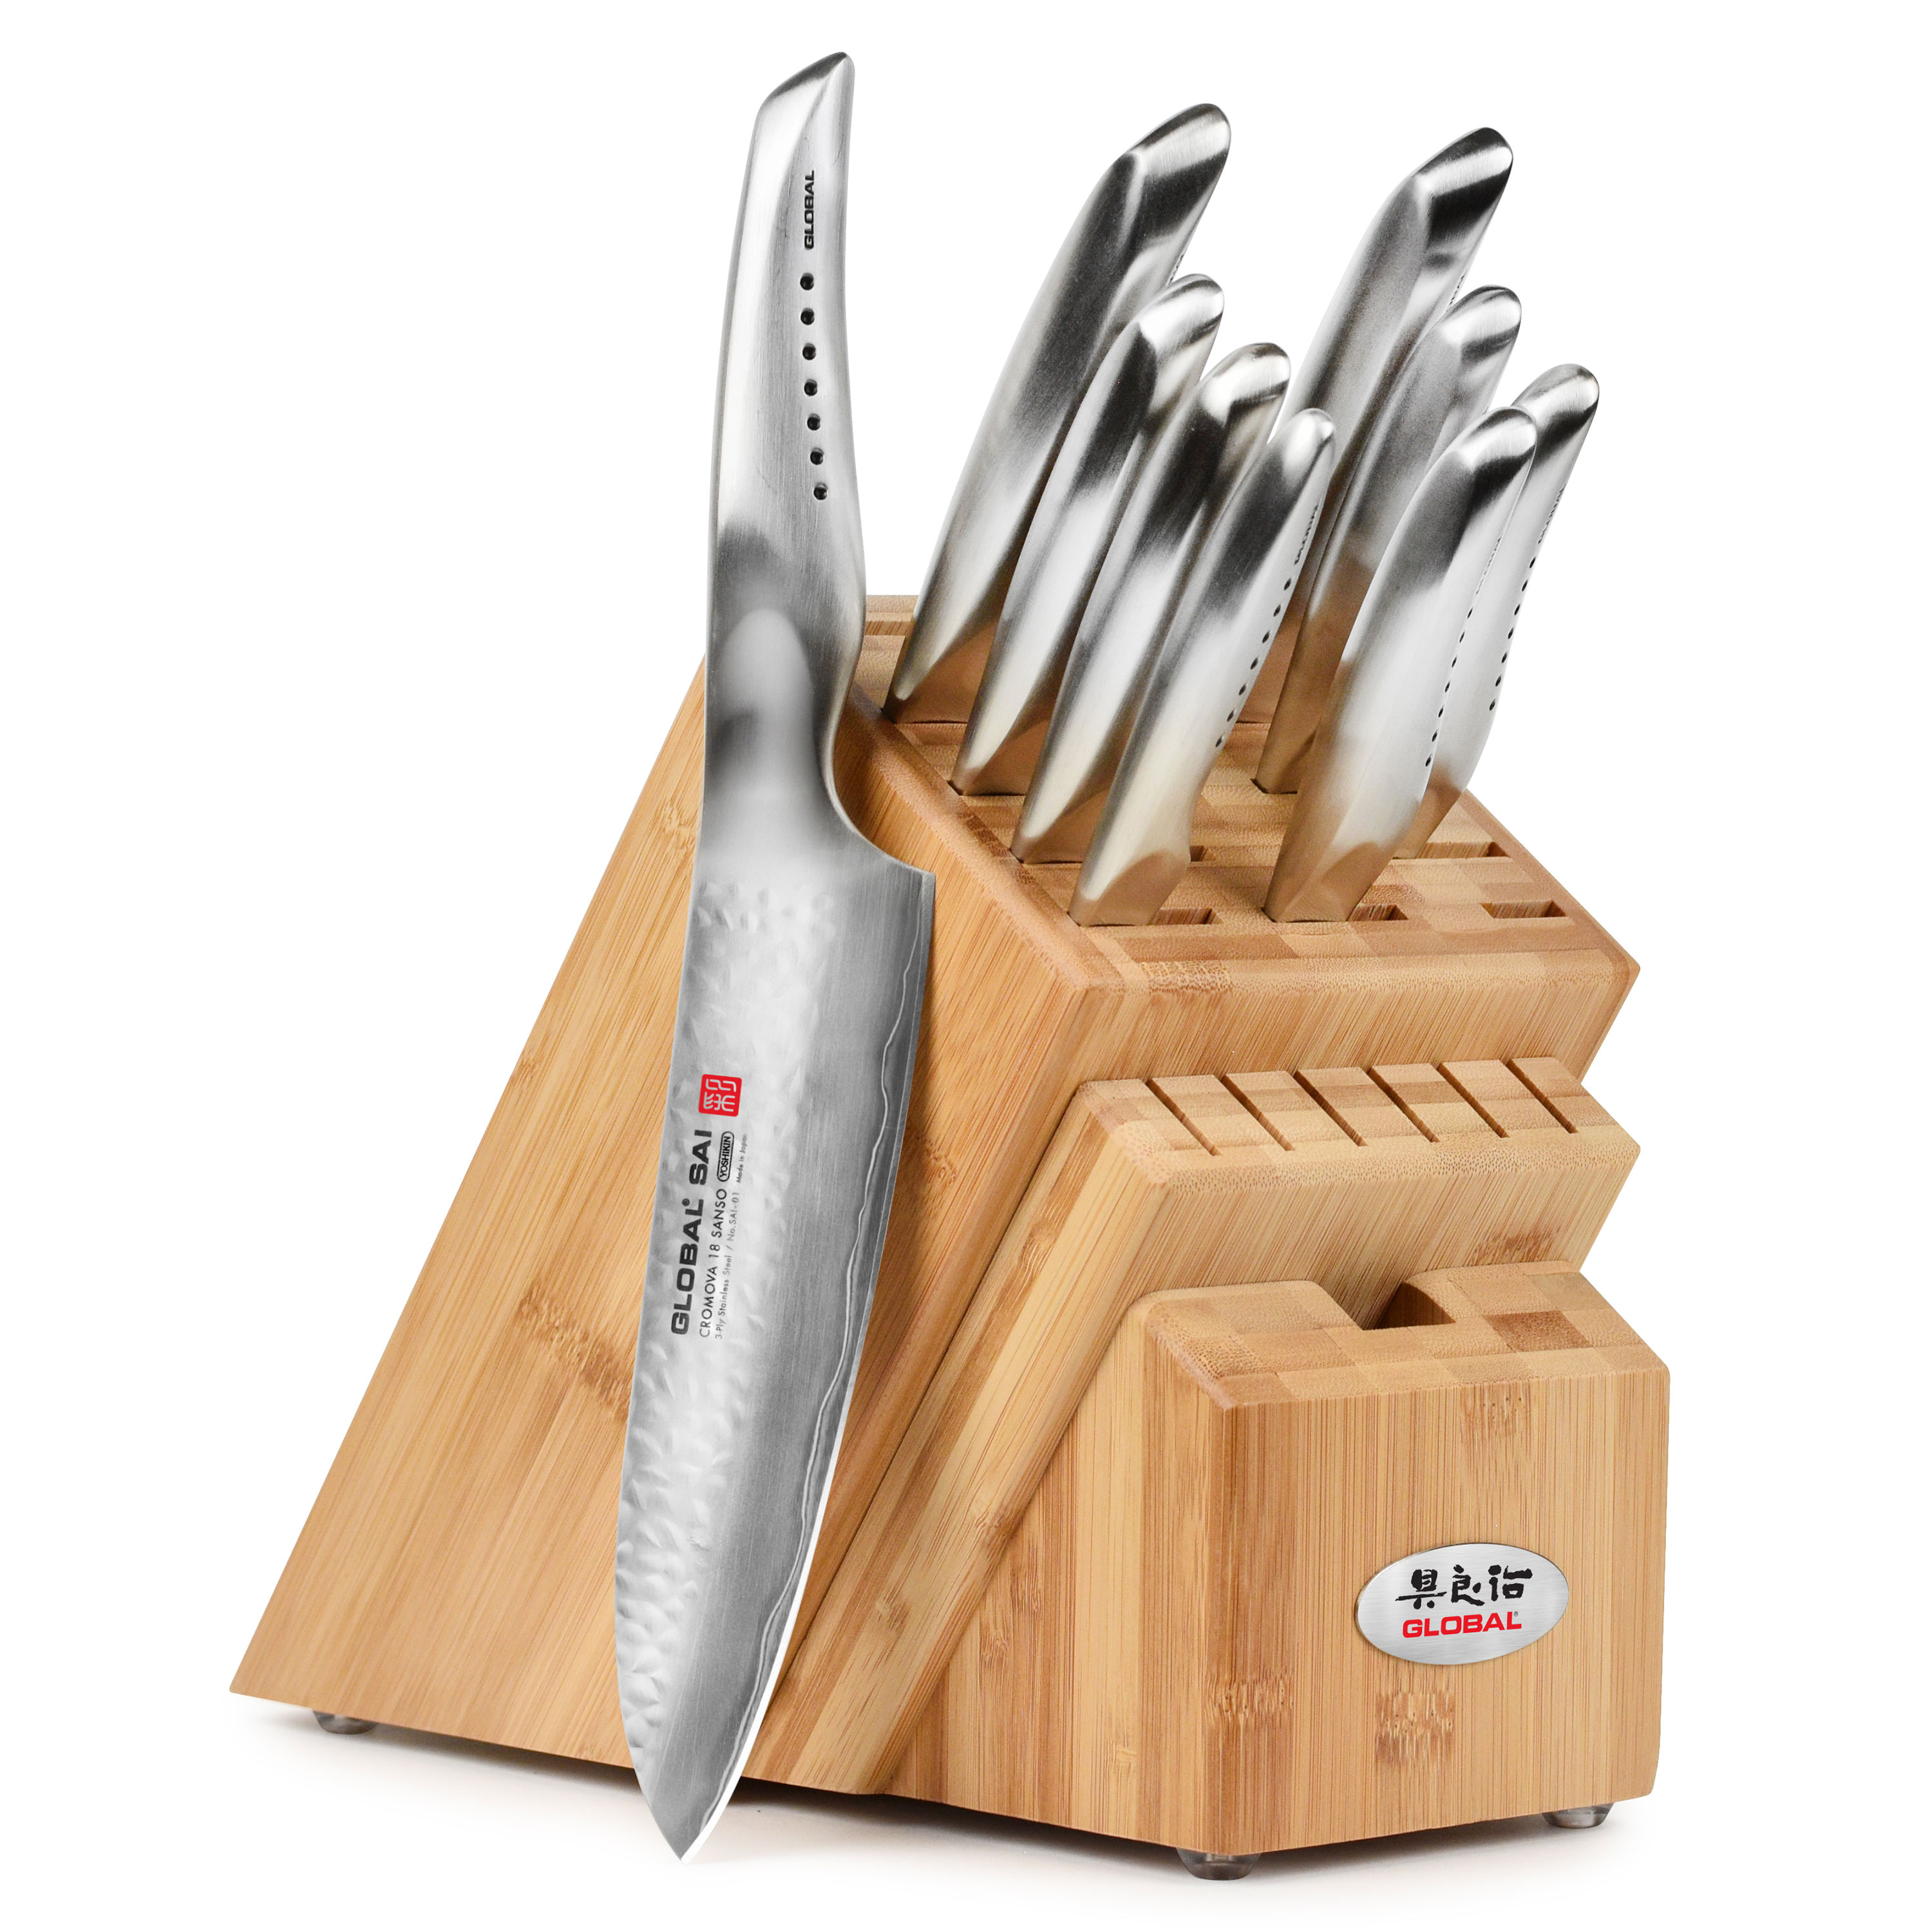 Global Sai Knife Set Japanese Knives 10 Piece Cutlery And More